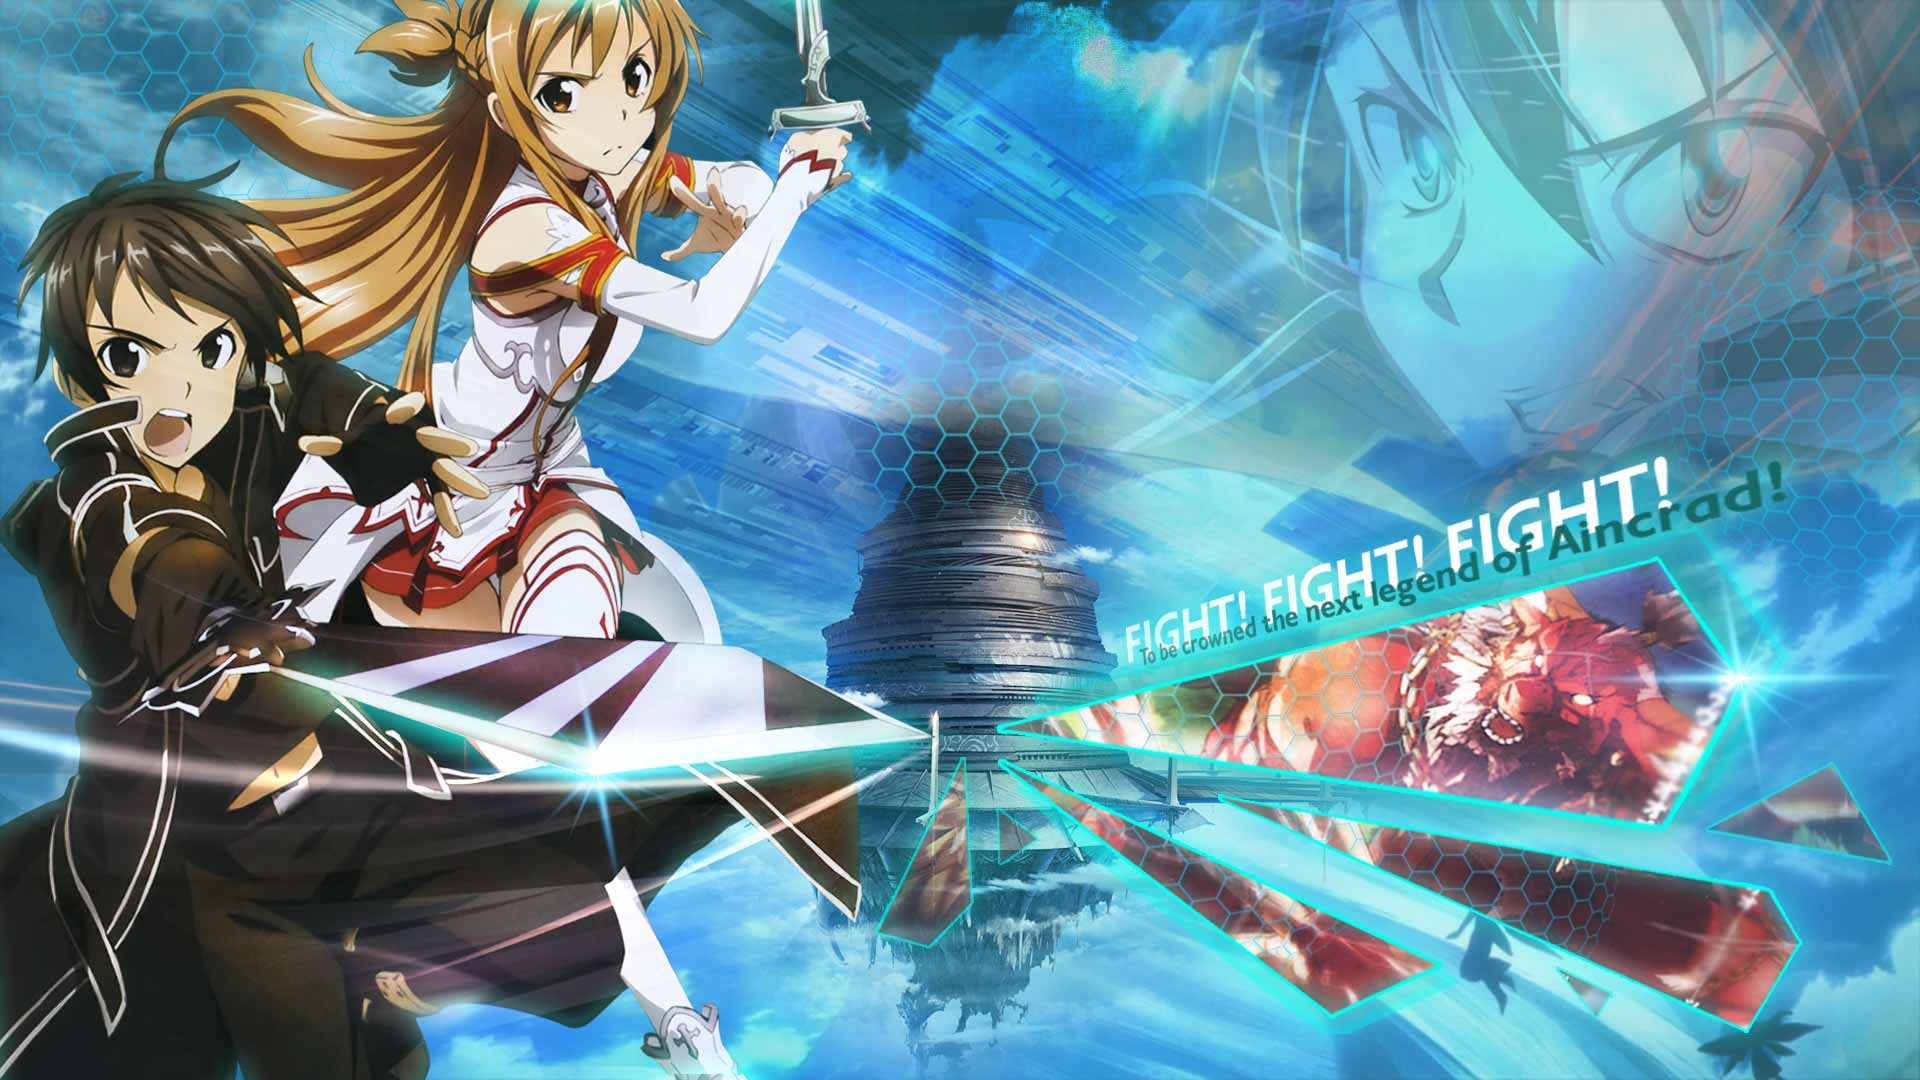 Asuna Android Cute Wallpaper Sao S Legend Free Anime Mmorpg Review Amp Download